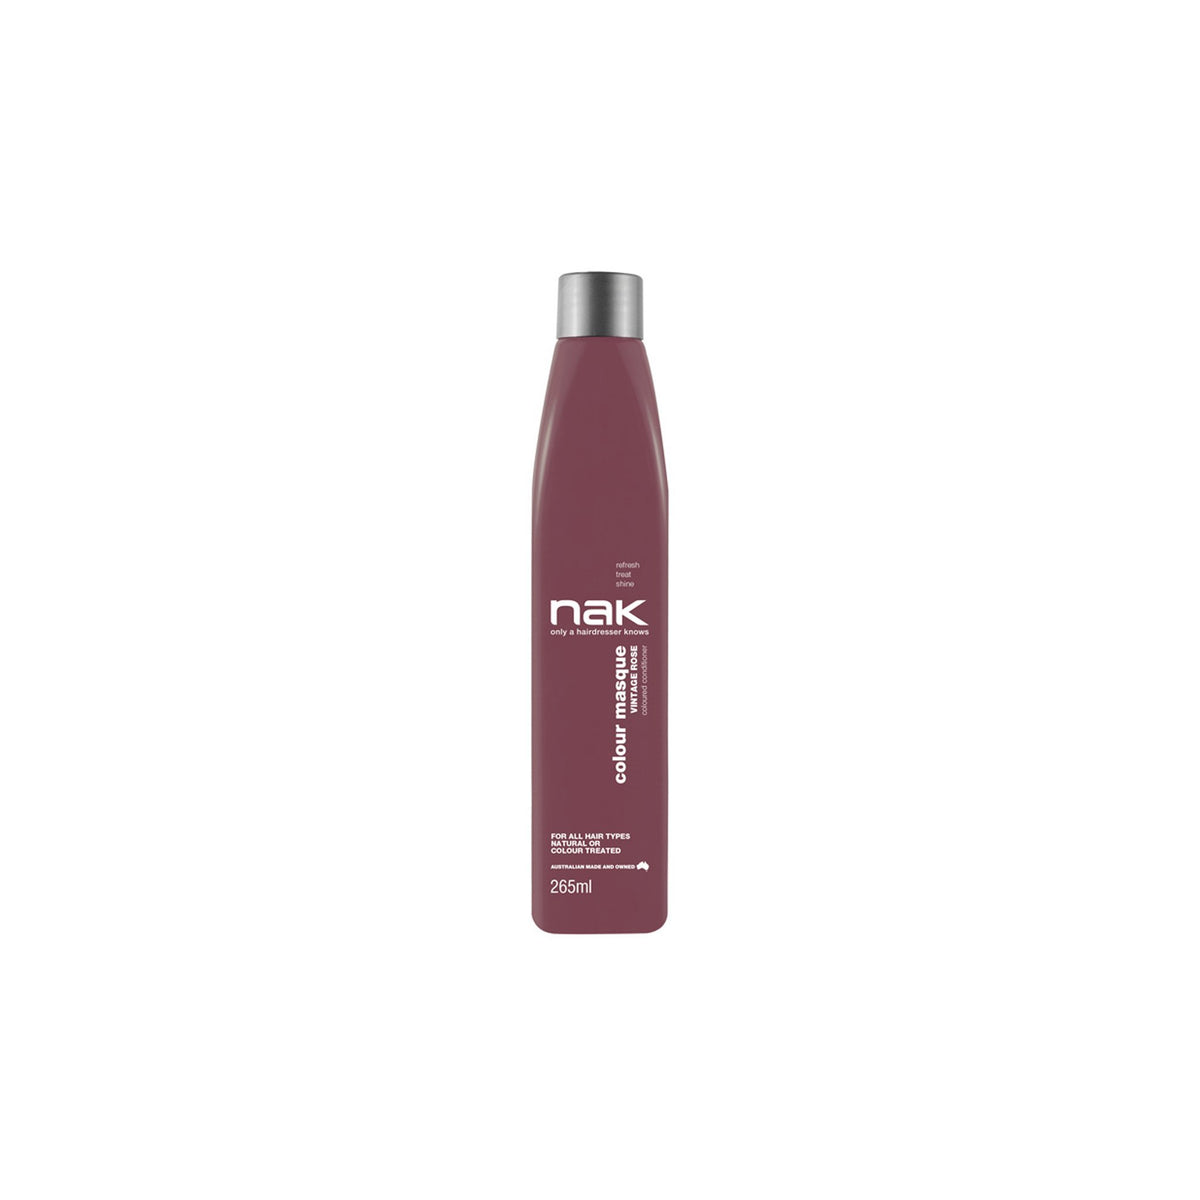 Nak Colour Masque Vintage Rose Conditioner  265ml